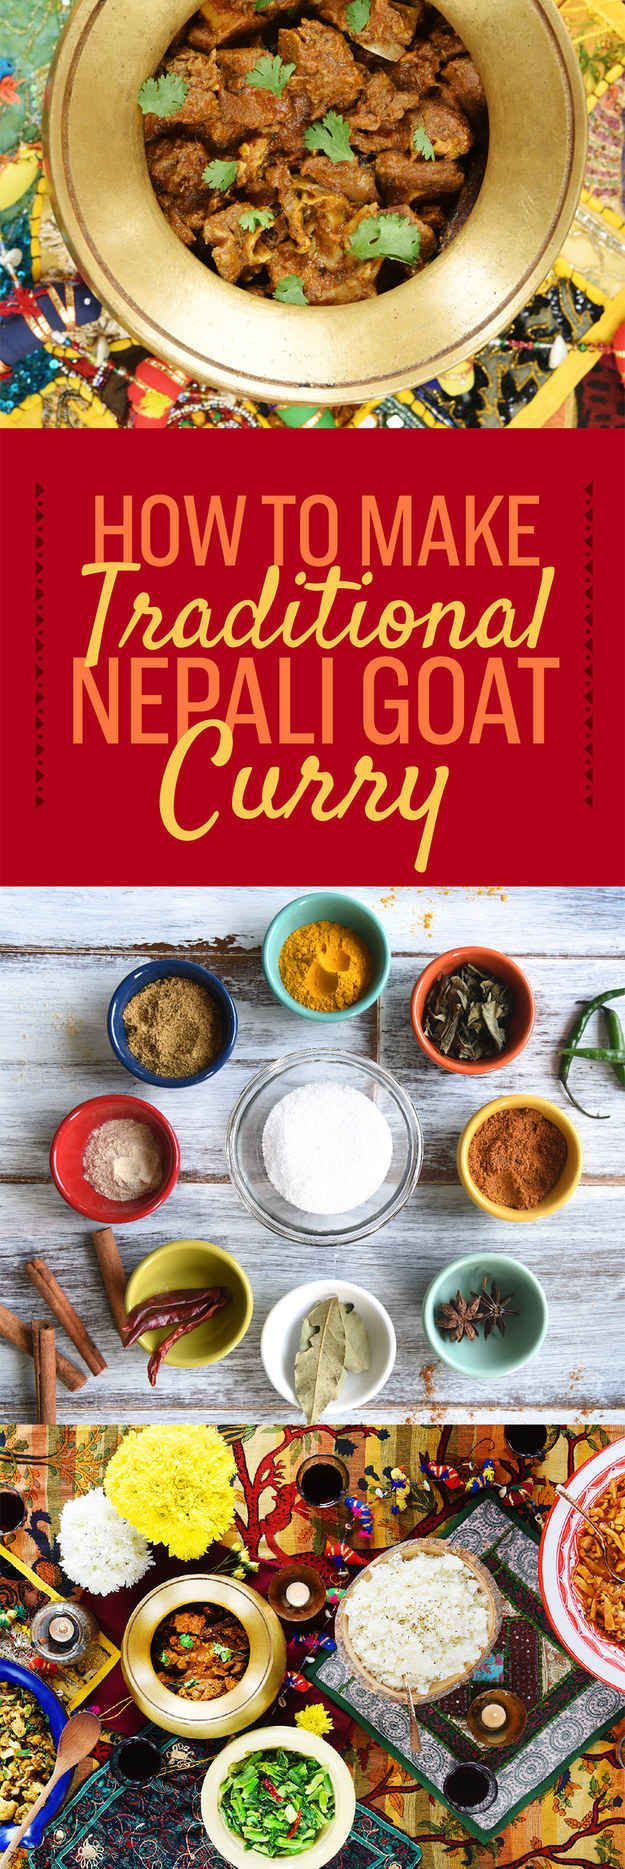 How To Make Proper Nepali Goat Curry- Goat is delicious, just take a look at our northern Nepali sisters for some amazing tips! | Brown Girl Magazine